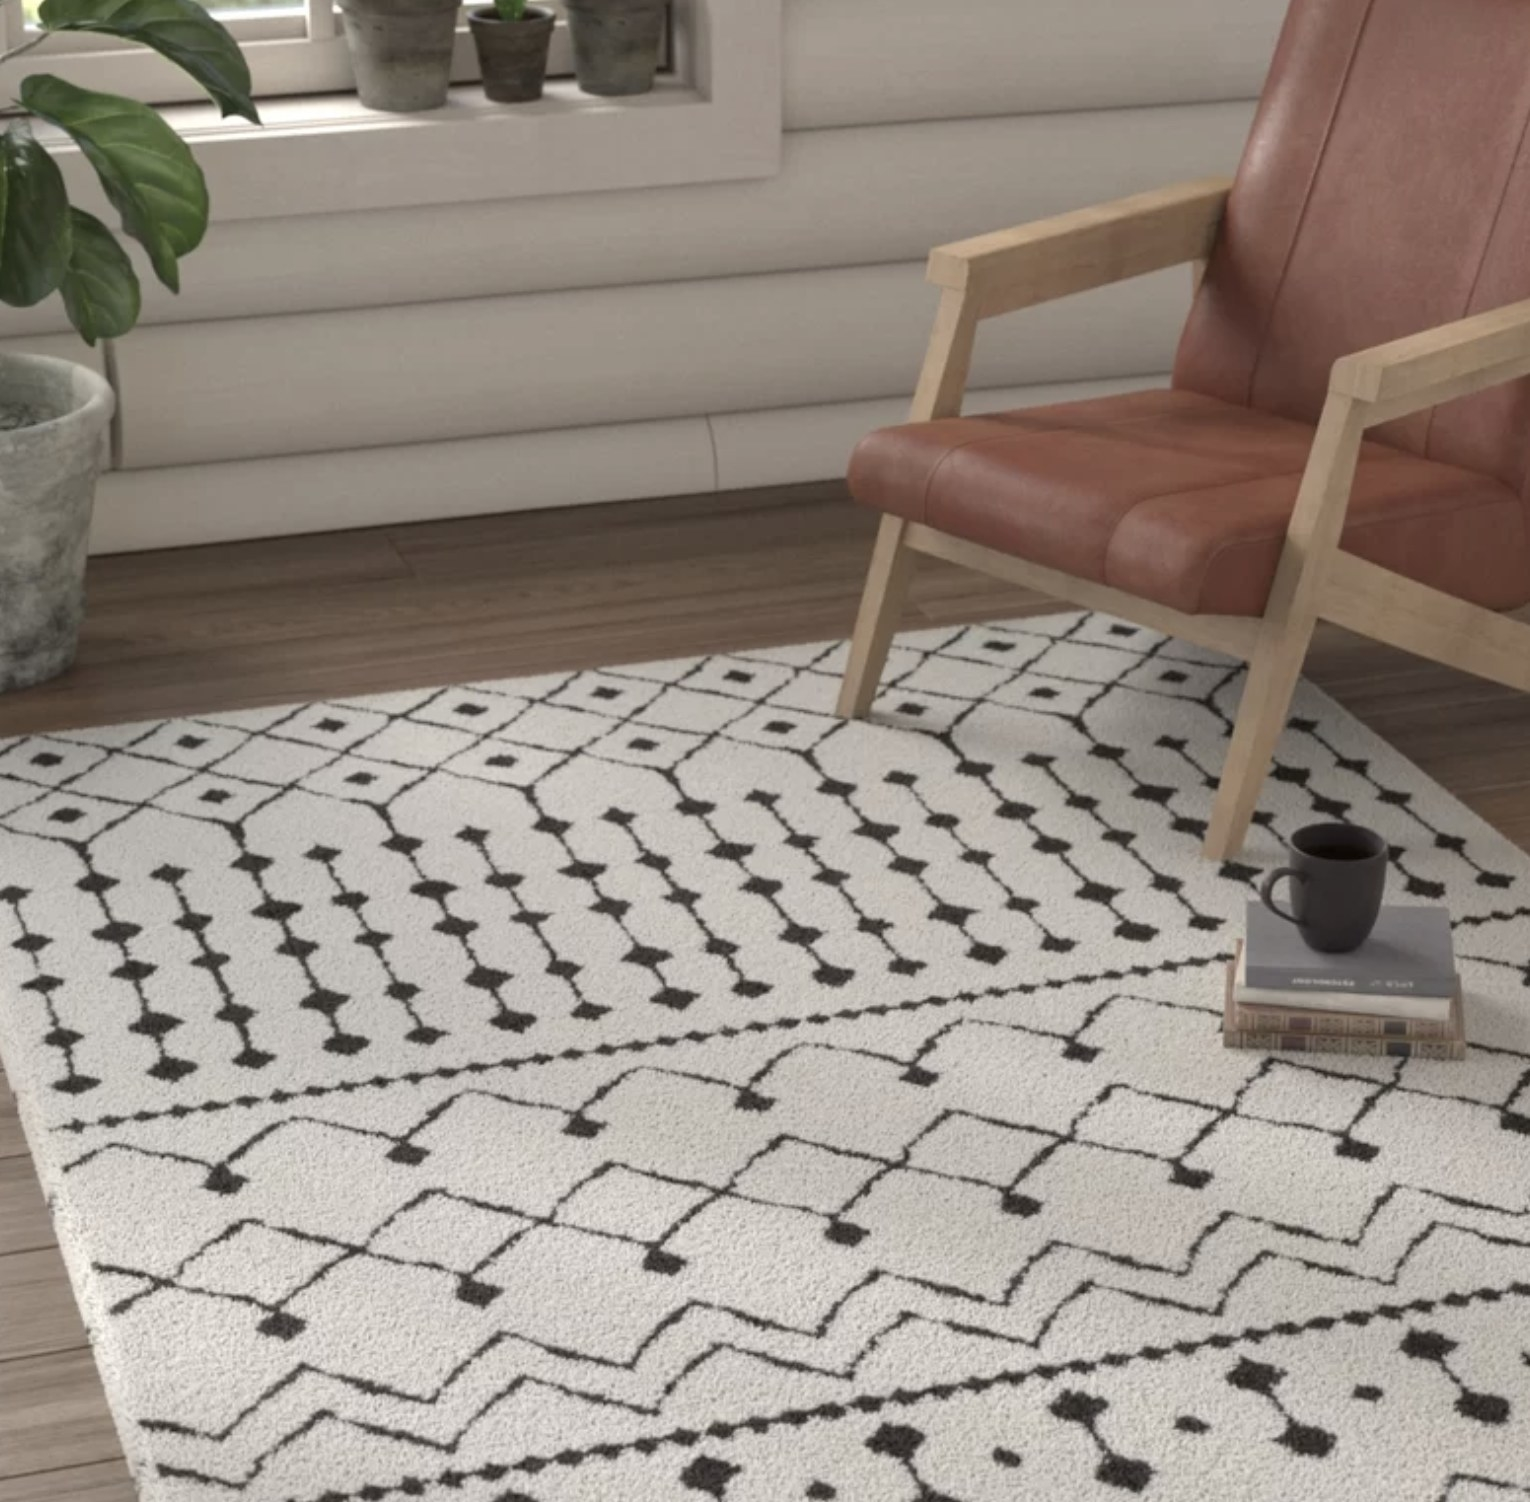 The white rug with black line patterns on it